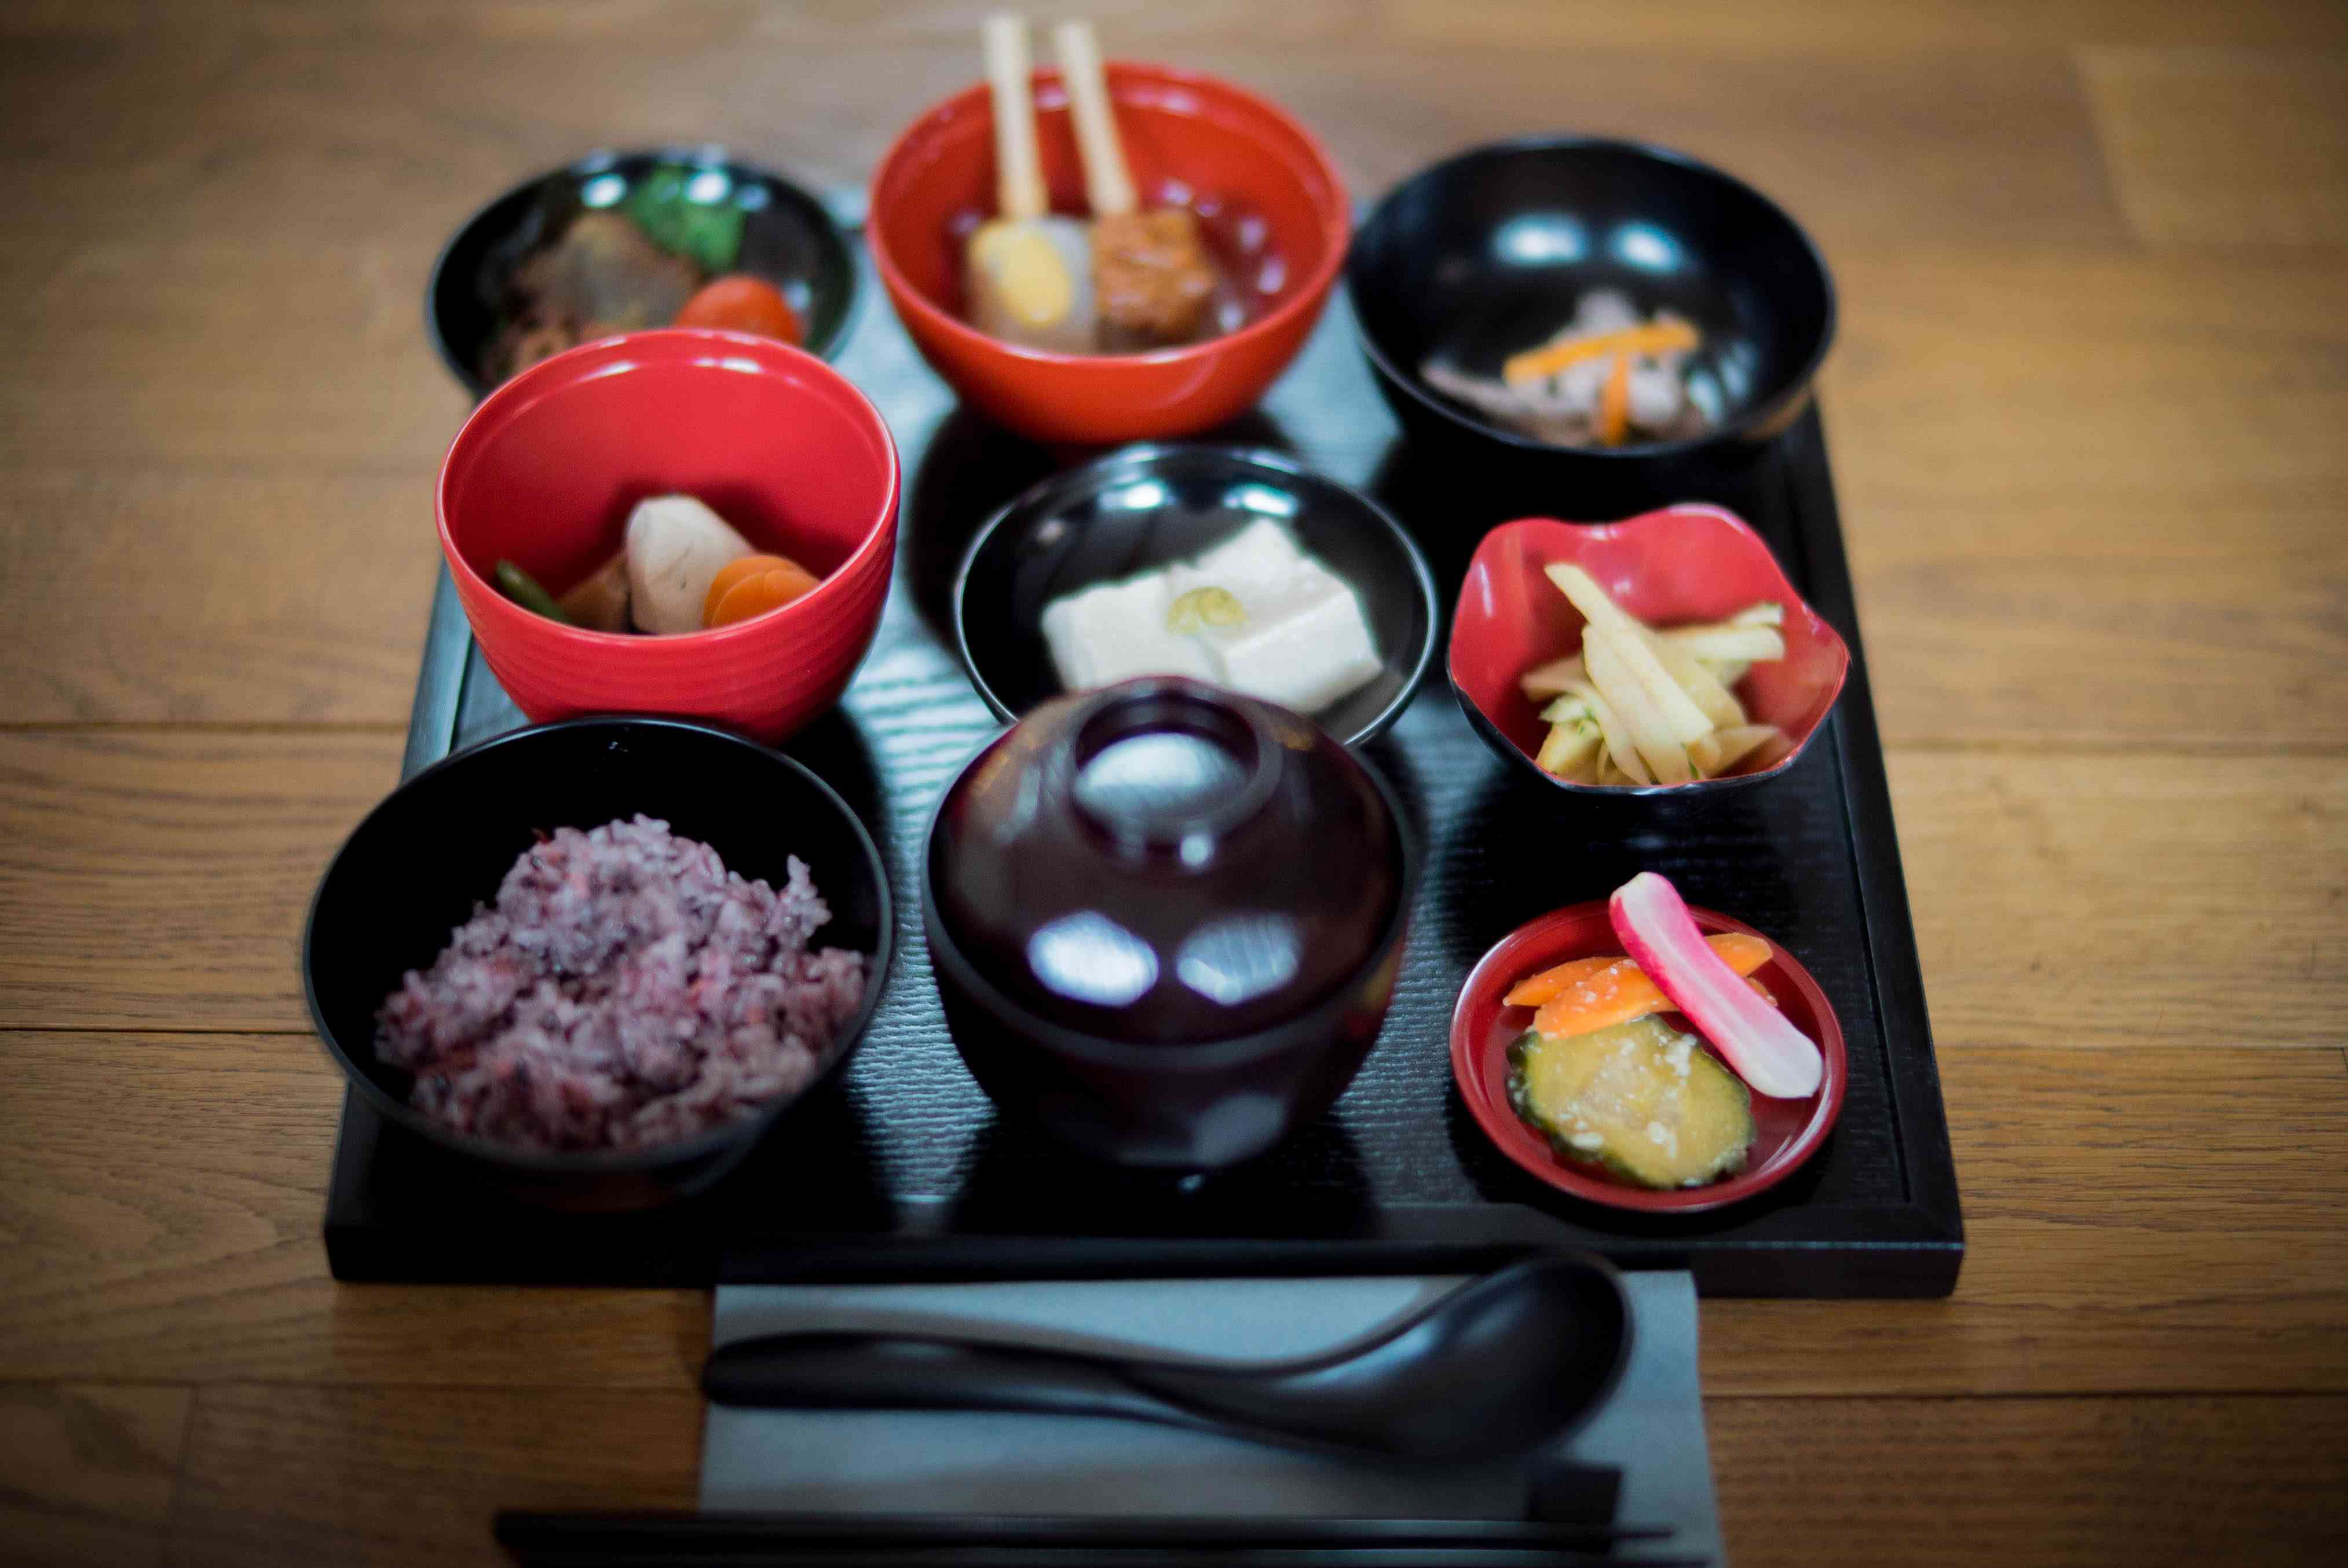 9 small plates of different dishes on a wooden square